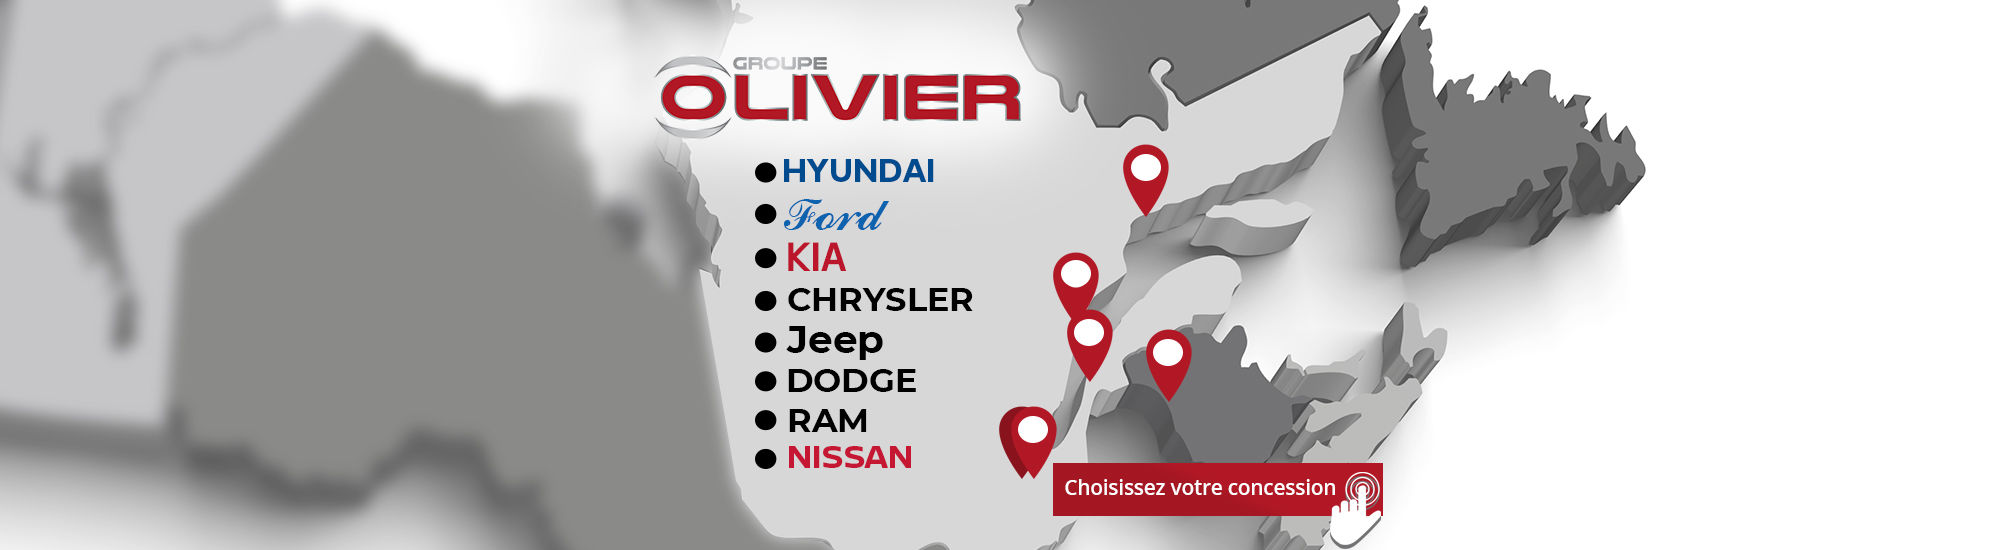 Groupe Olivier